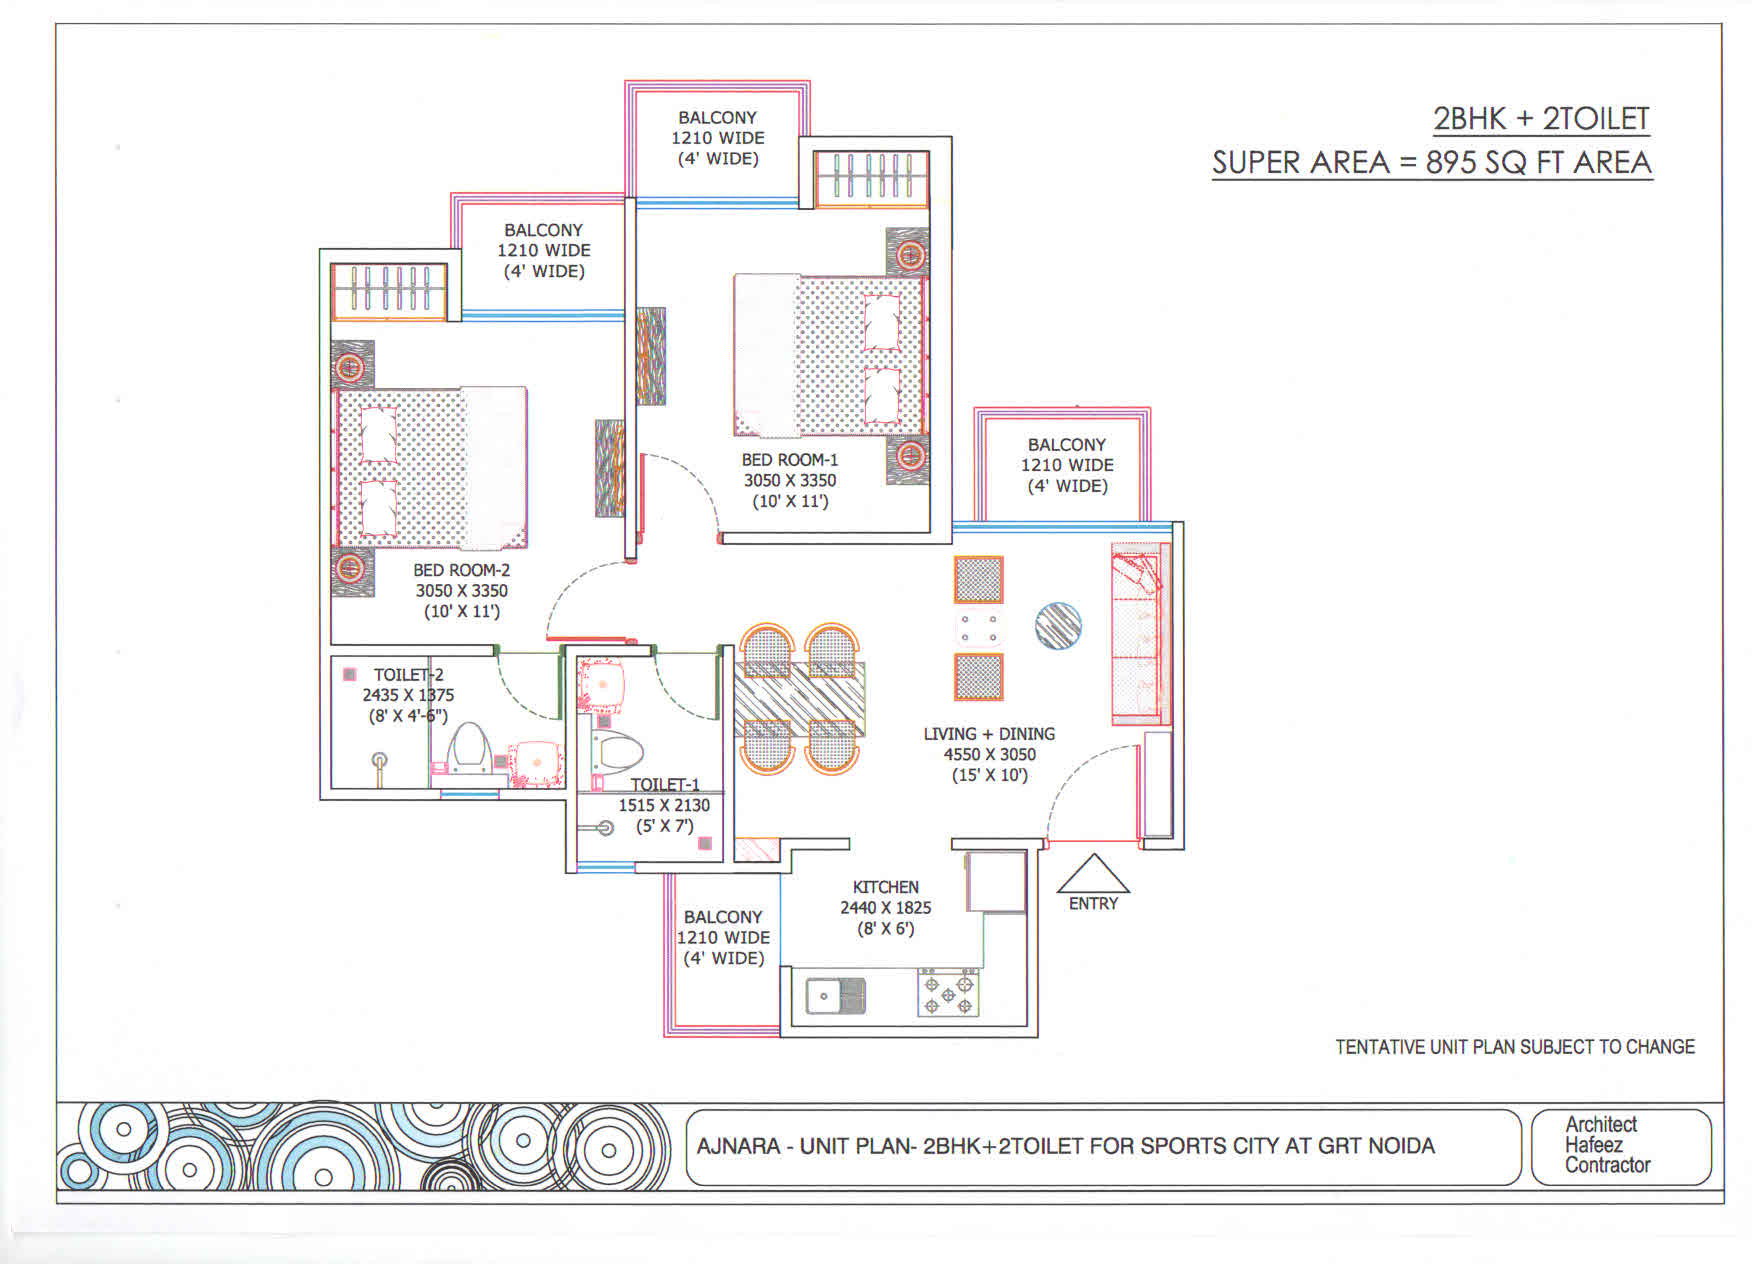 Ajnara Sports City floor plan 2bhk 2toilet 895 sqft